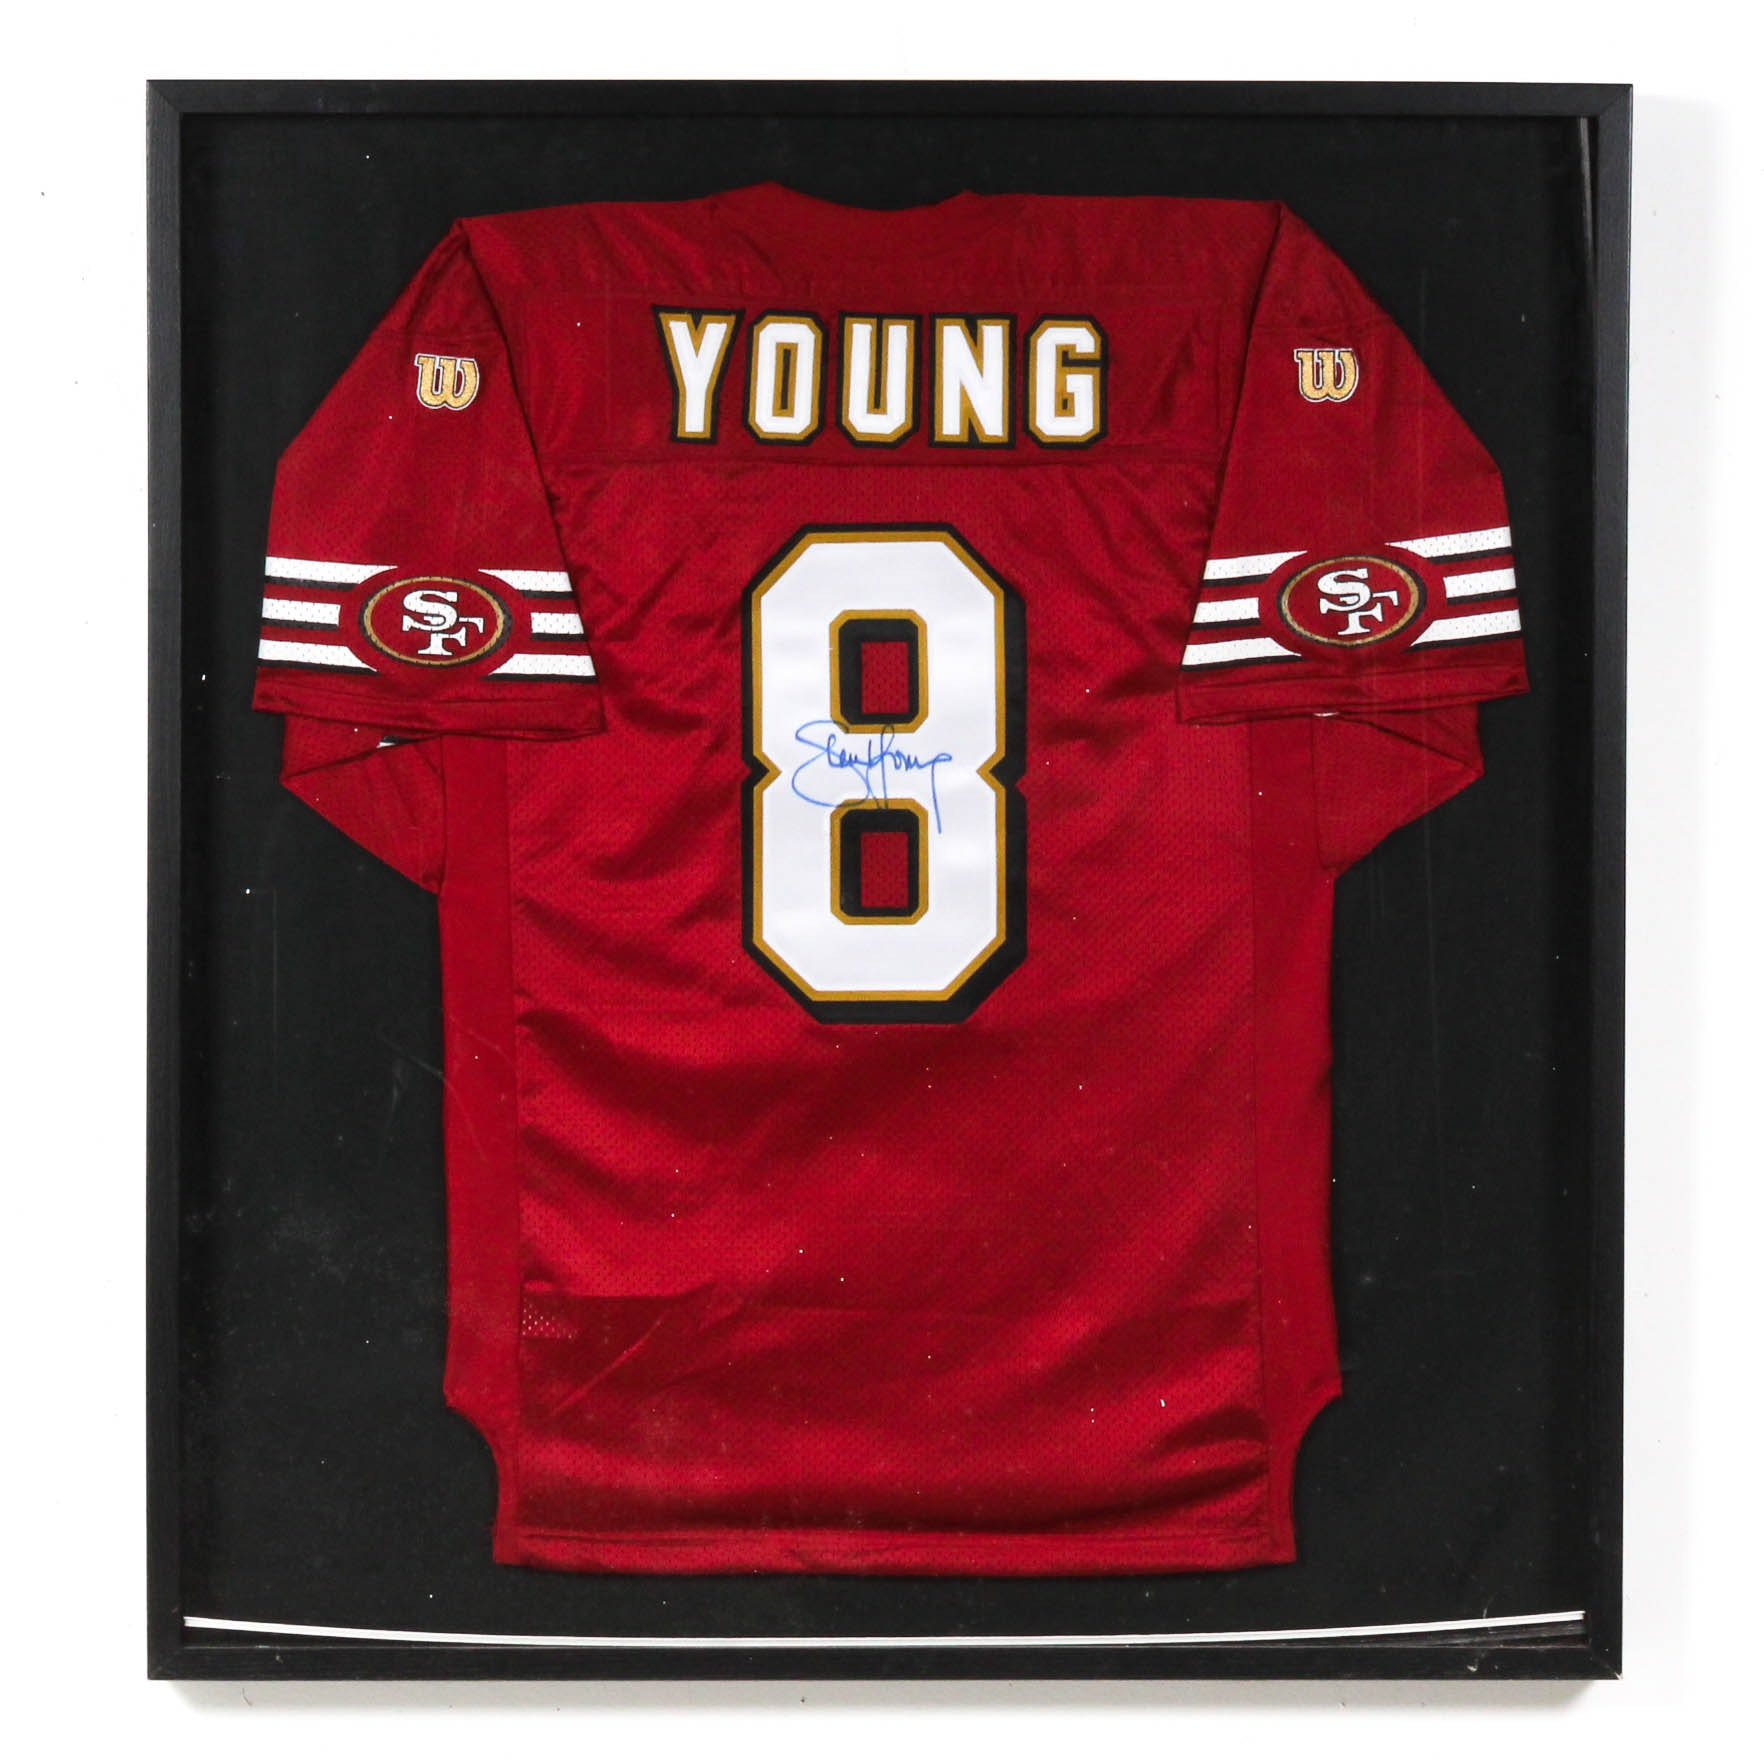 Steve Young Autographed San Francisco 49ers Wilson Football Jersey